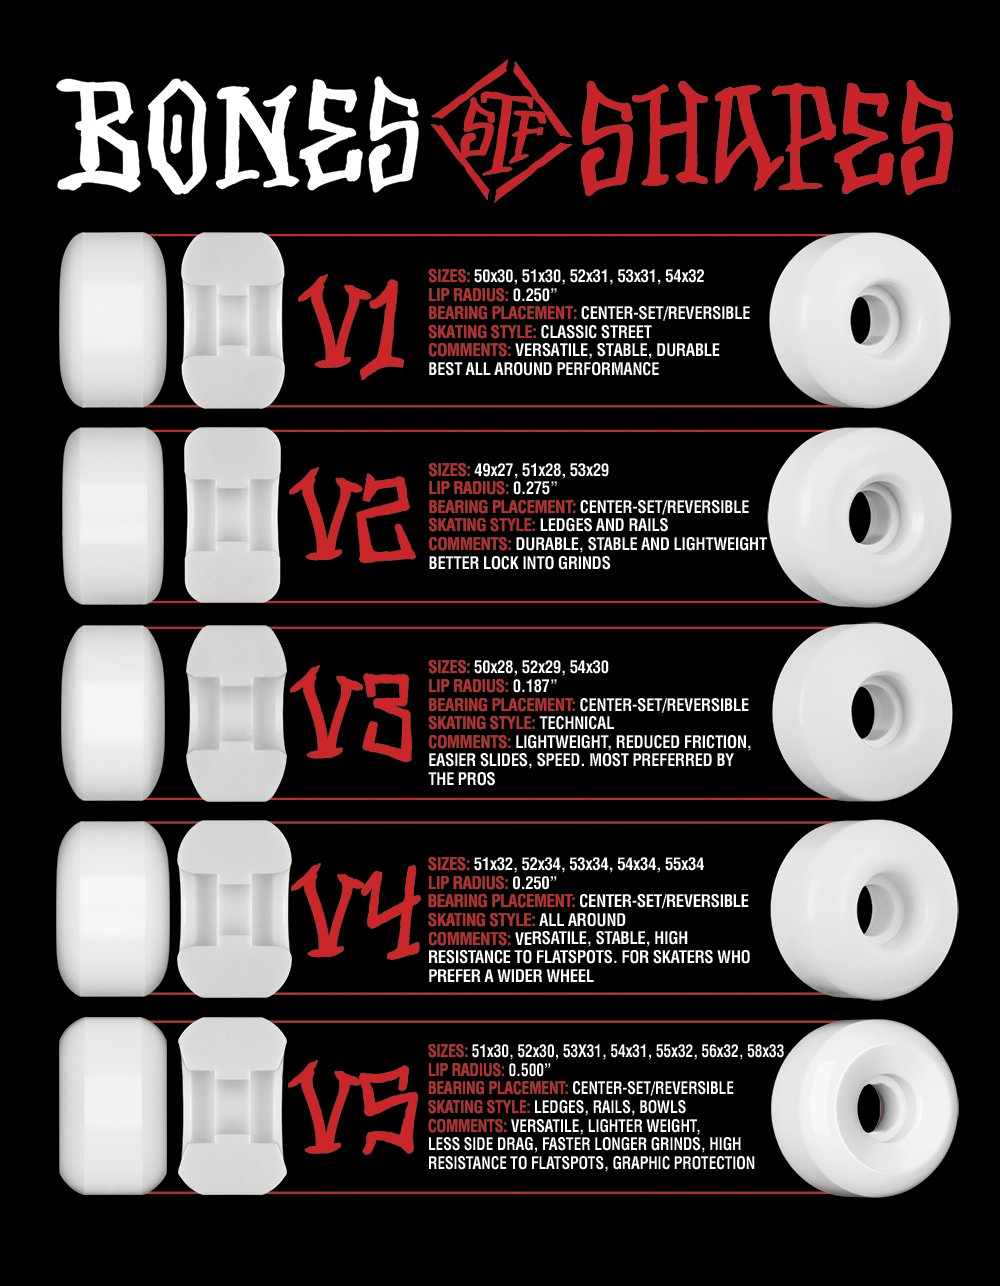 BONES WHEELS V SHAPE CHART